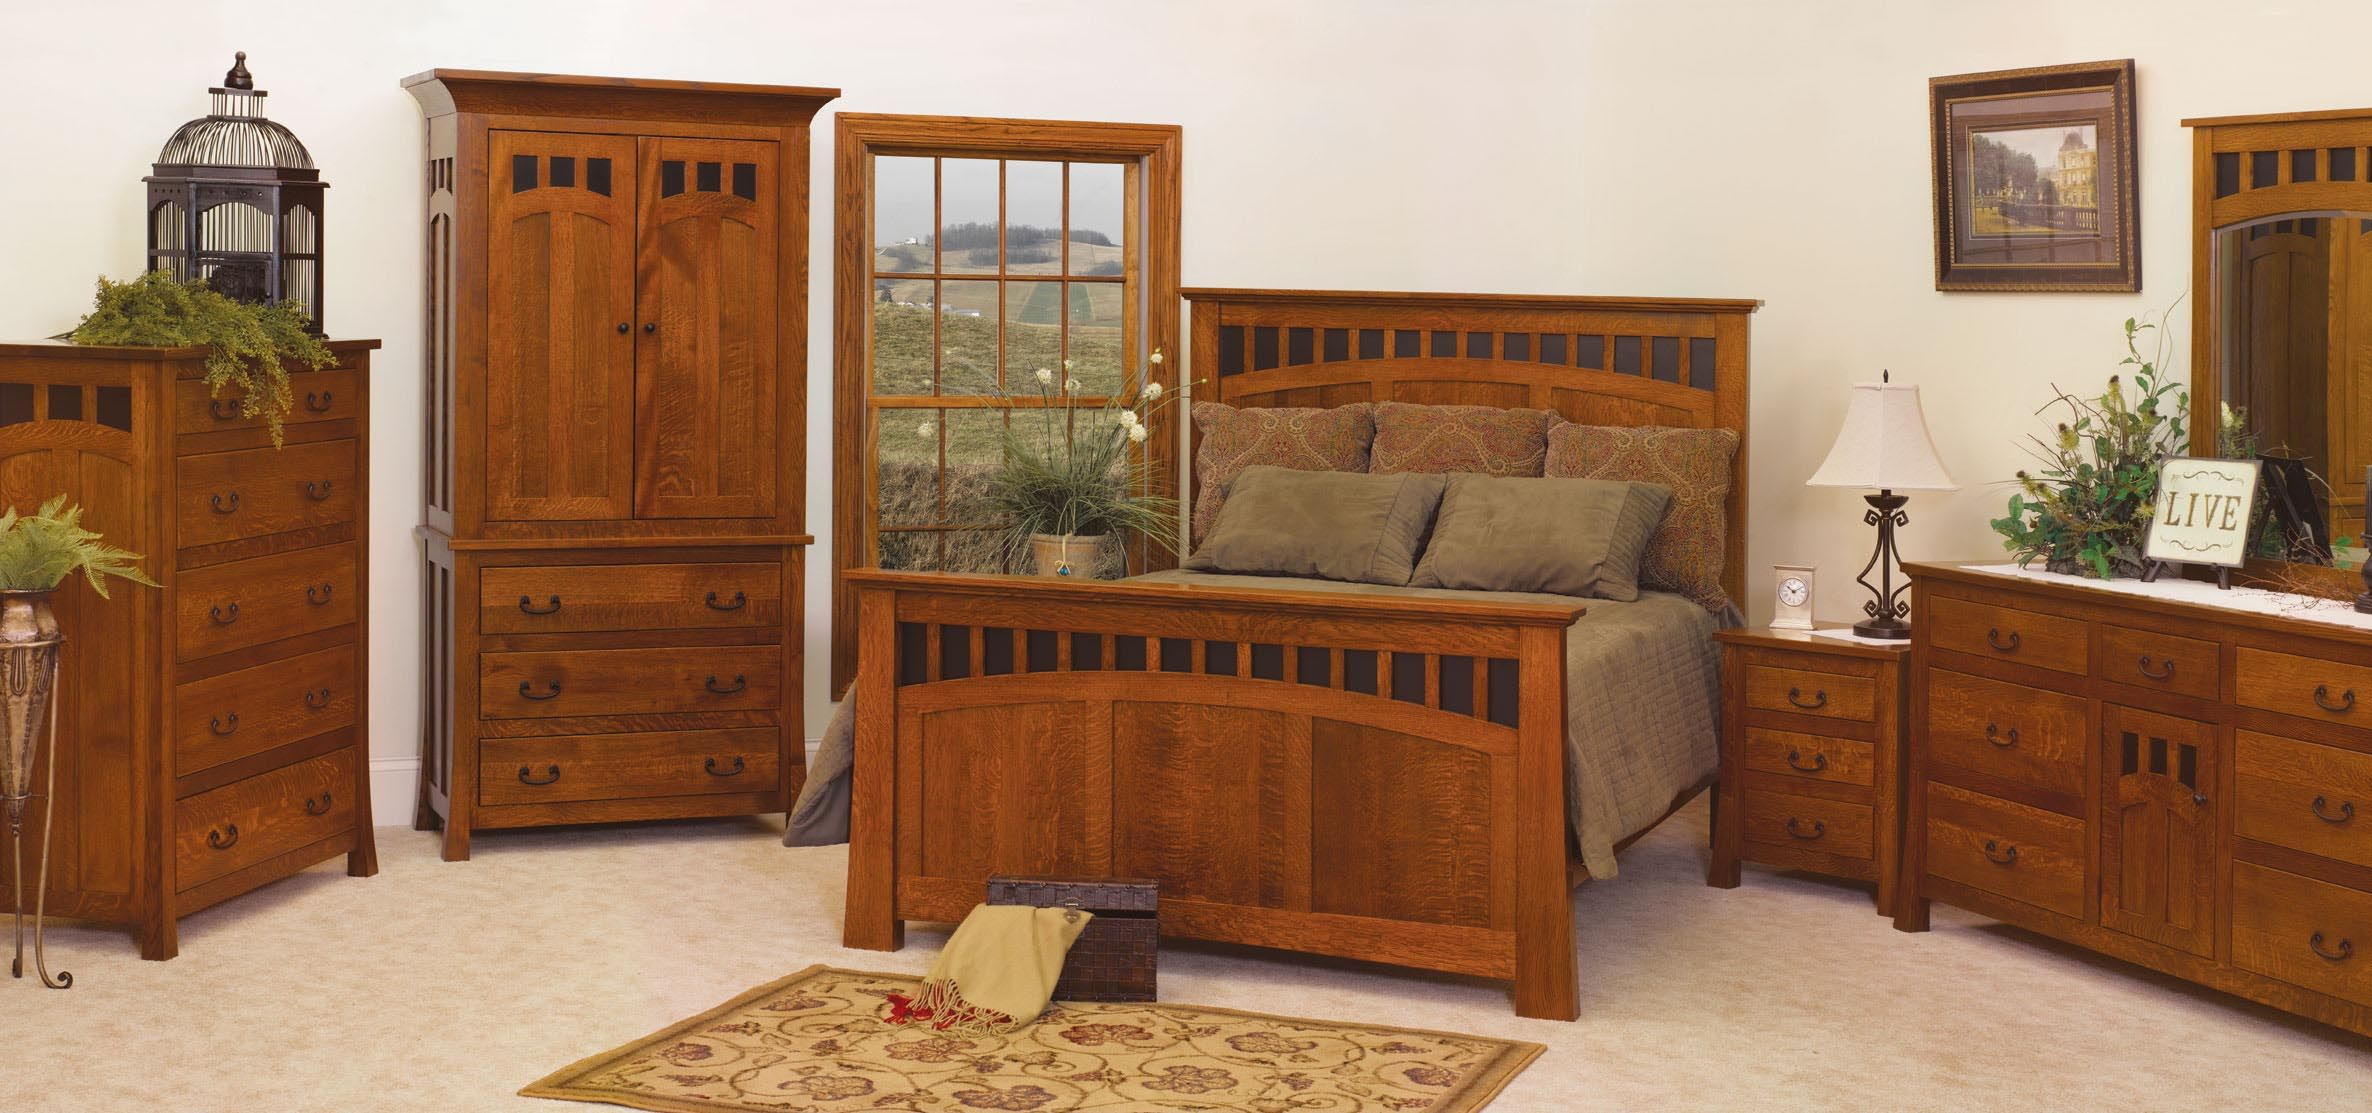 Wooden Bedroom Furniture Sets Mission Style Bedroom Furniture Sets Furniture Mission Style